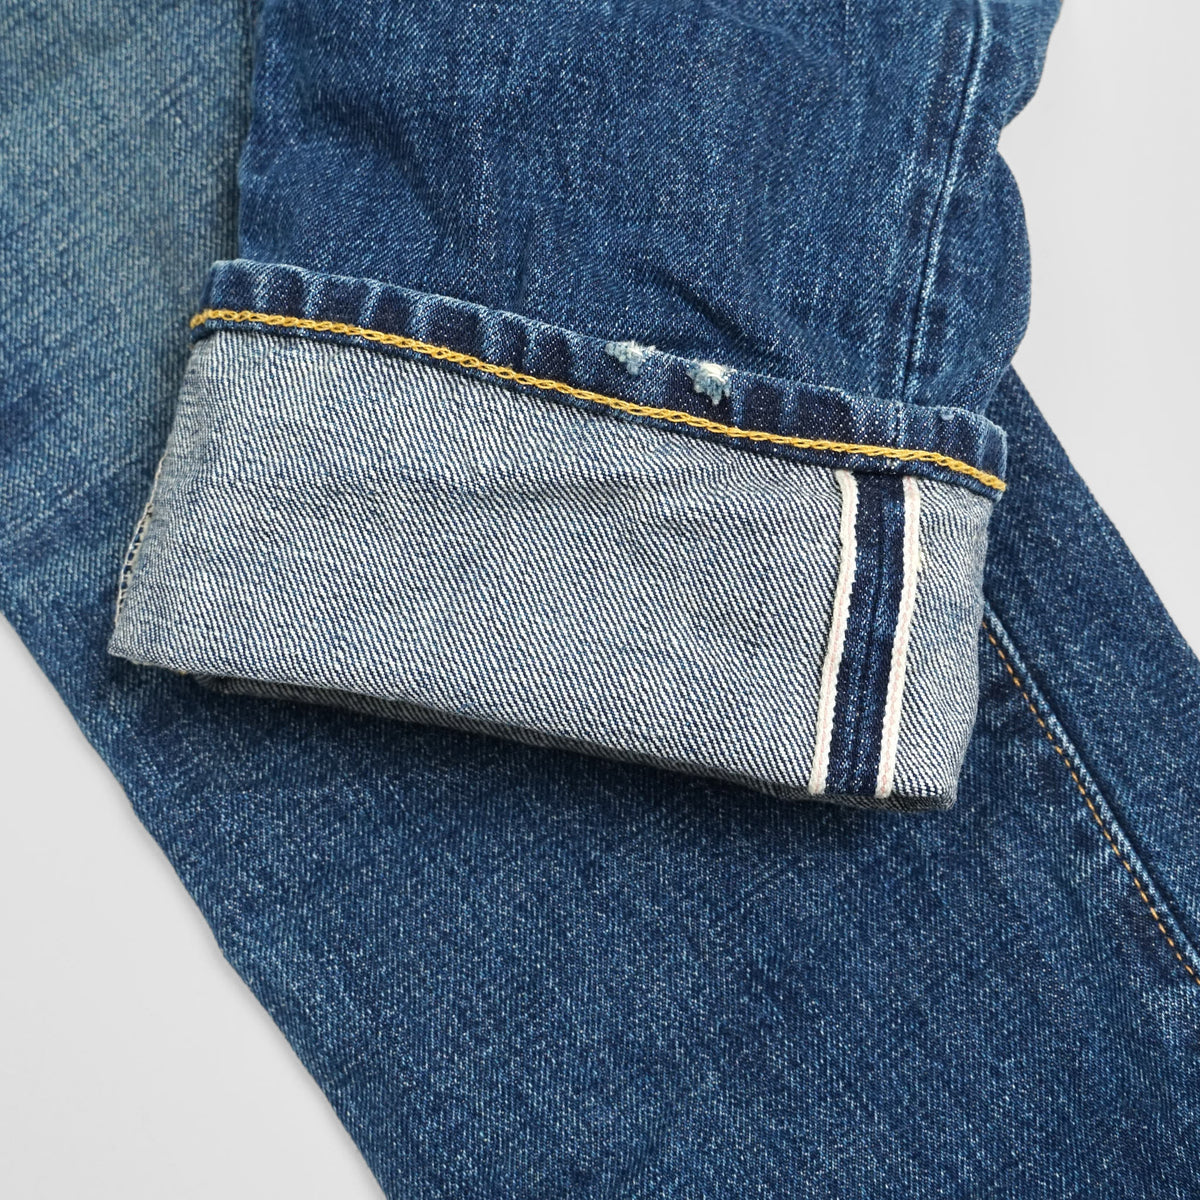 Double RL Selvage Denim Jeans  Slim Narrow